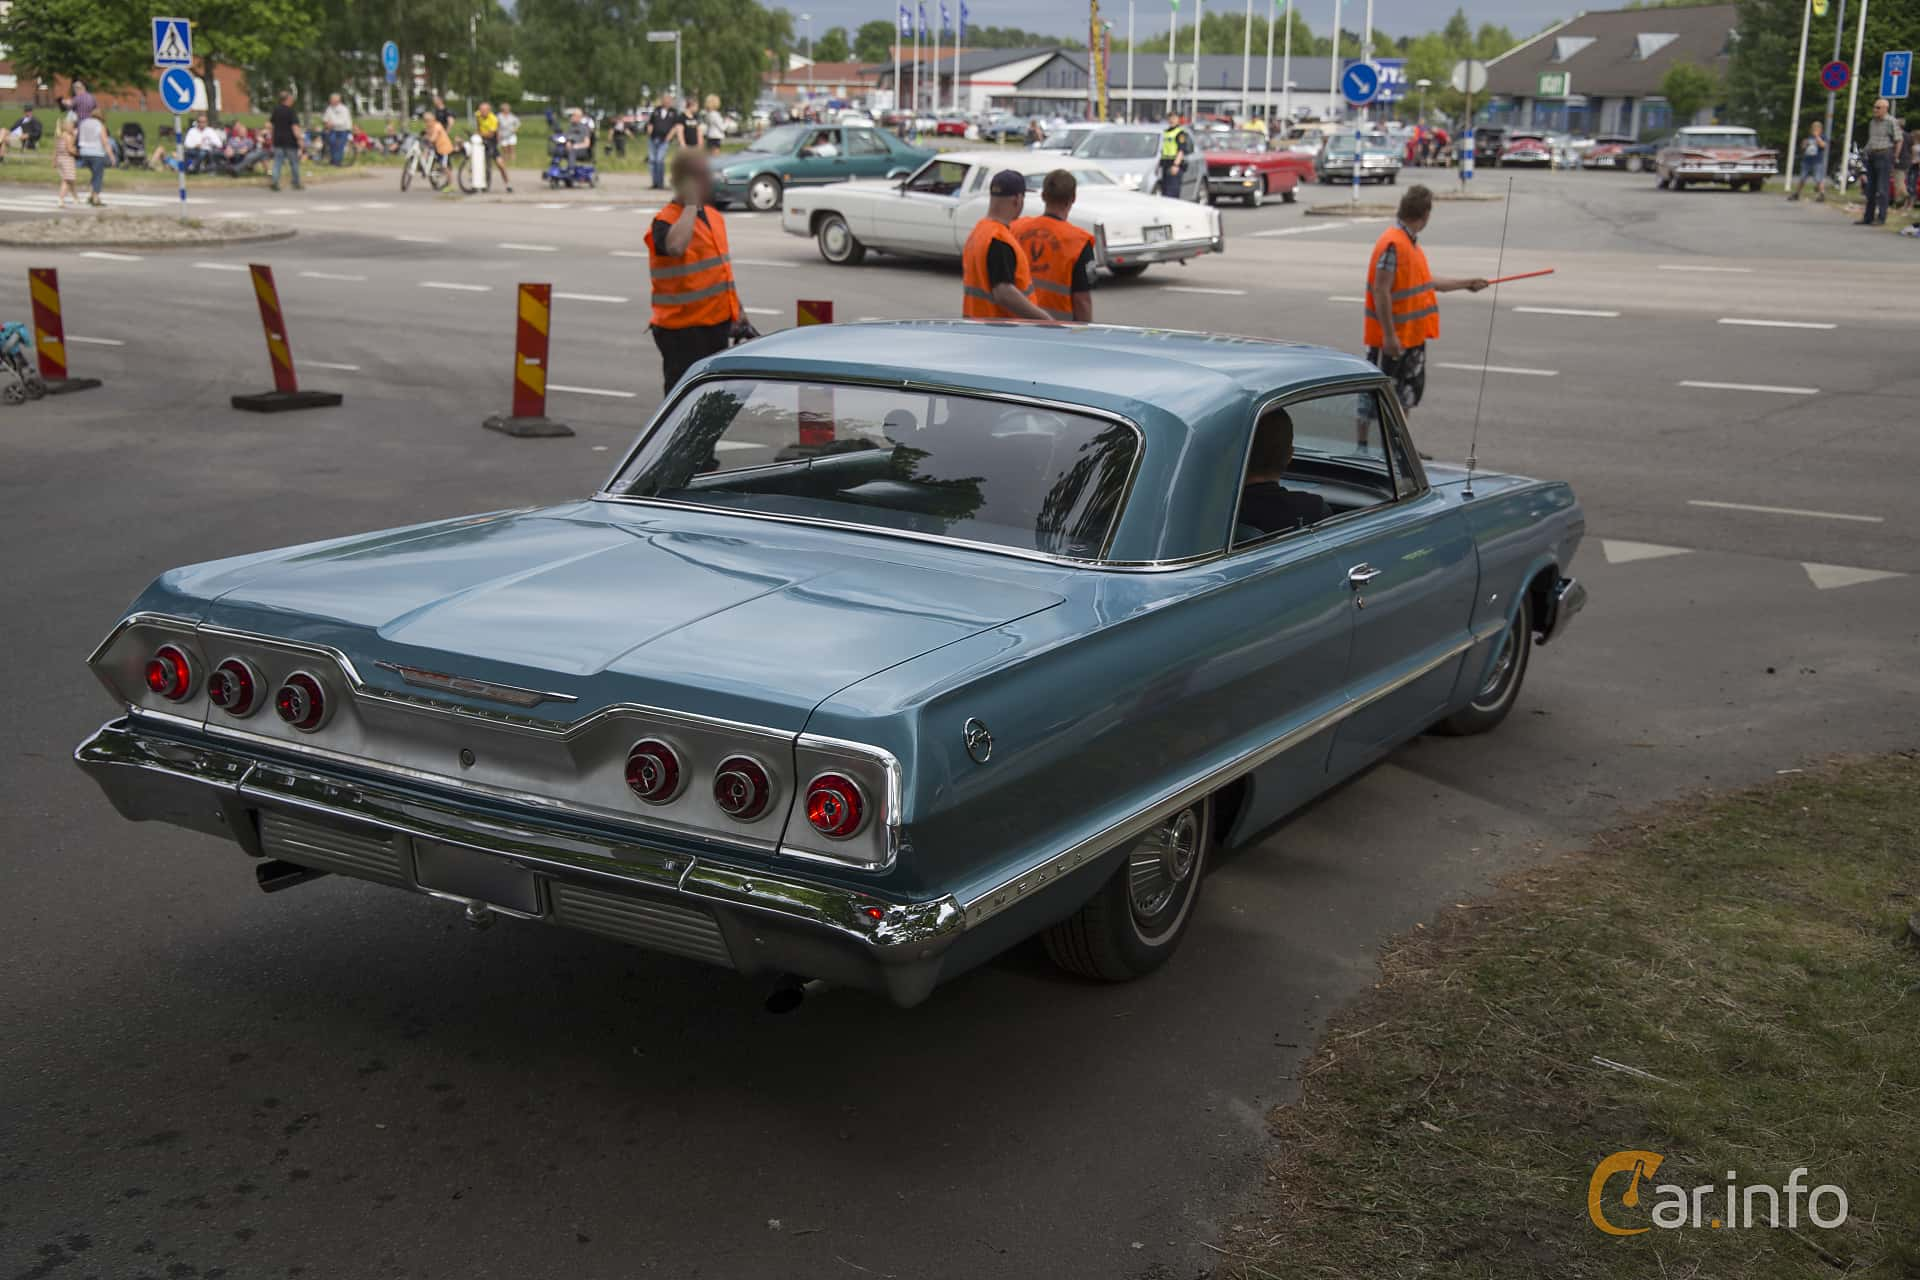 Chevrolet Impala Sport Coupé 4.6 V8 Powerglide, 198hp, 1963 at Hässleholm Power Start of Summer Meet 2016